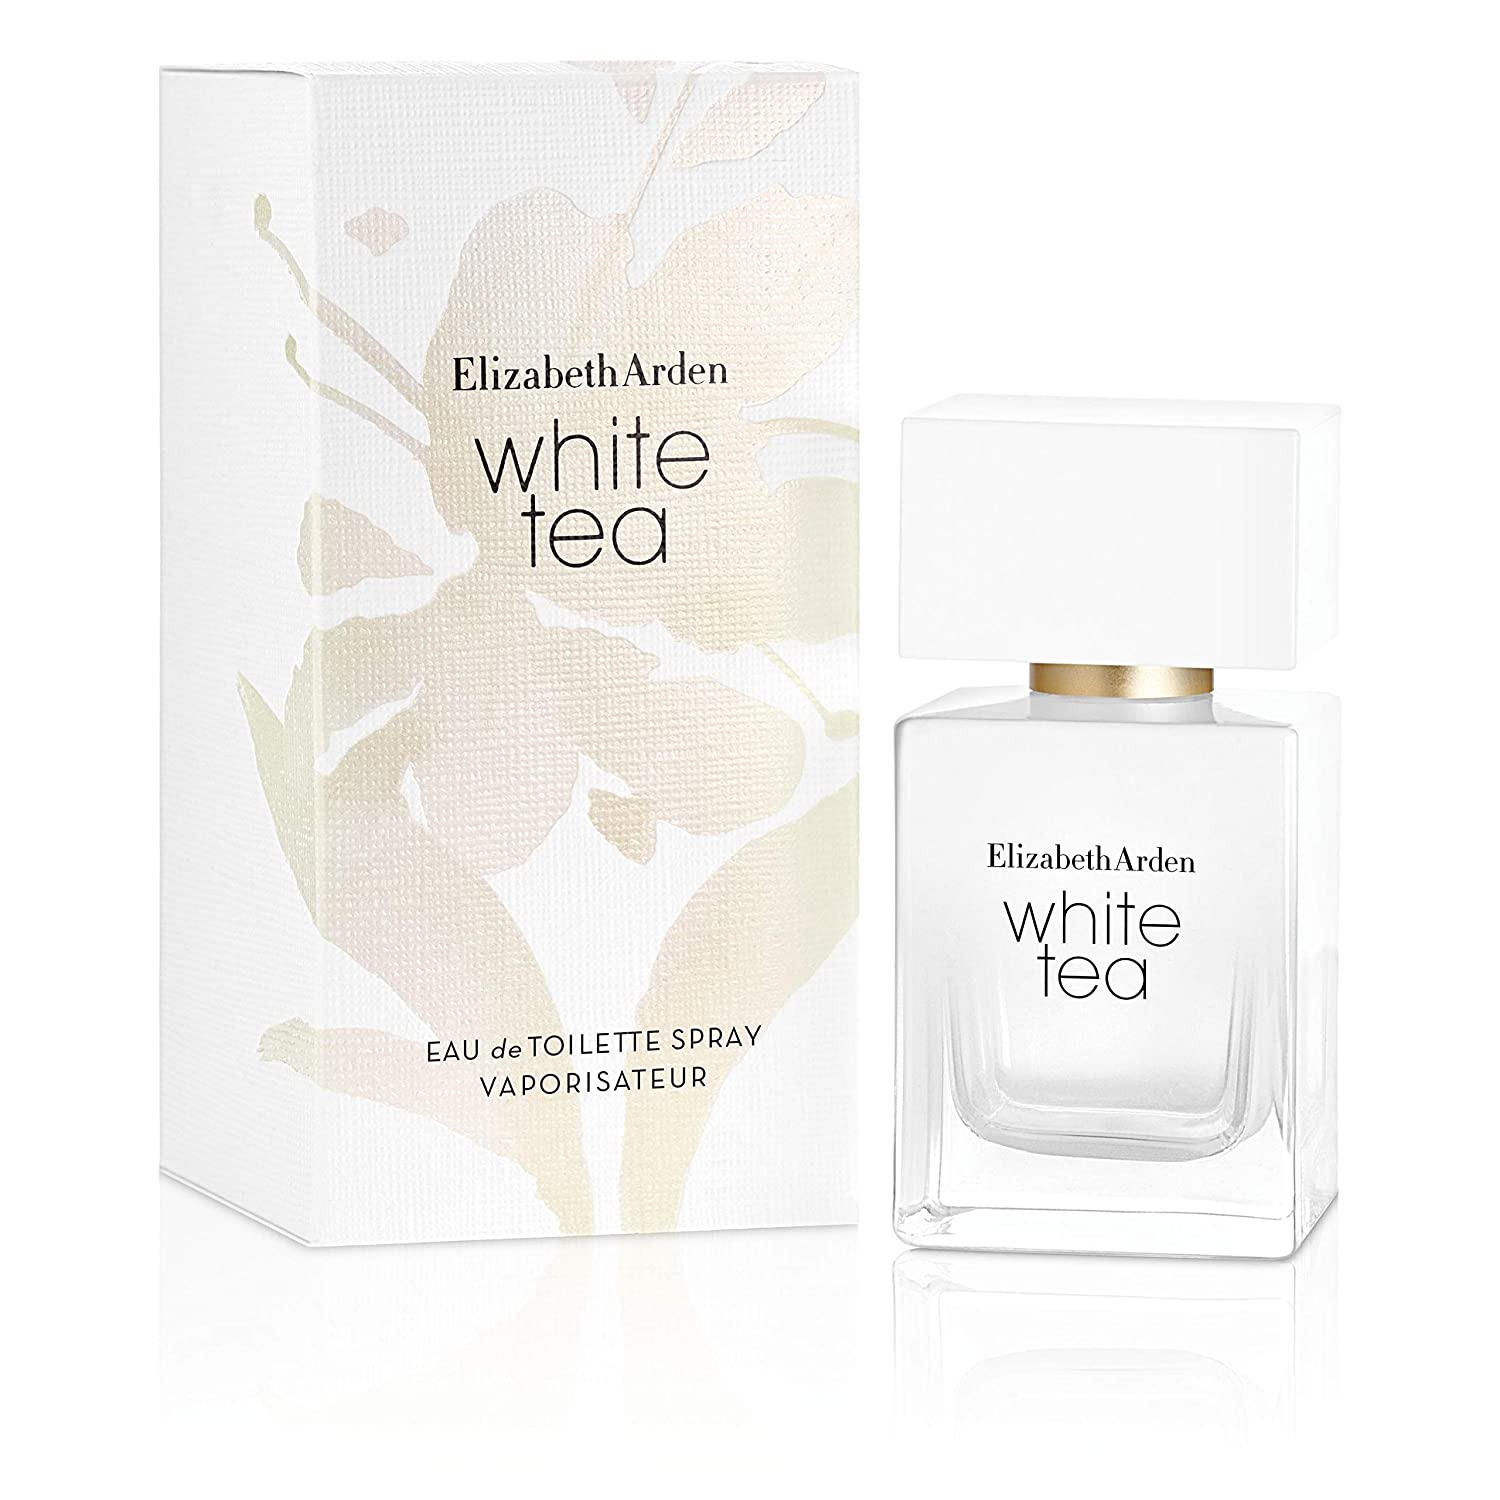 Elizabeth Arden White Tea Eau de Toilette 30 ml: Amazon.es